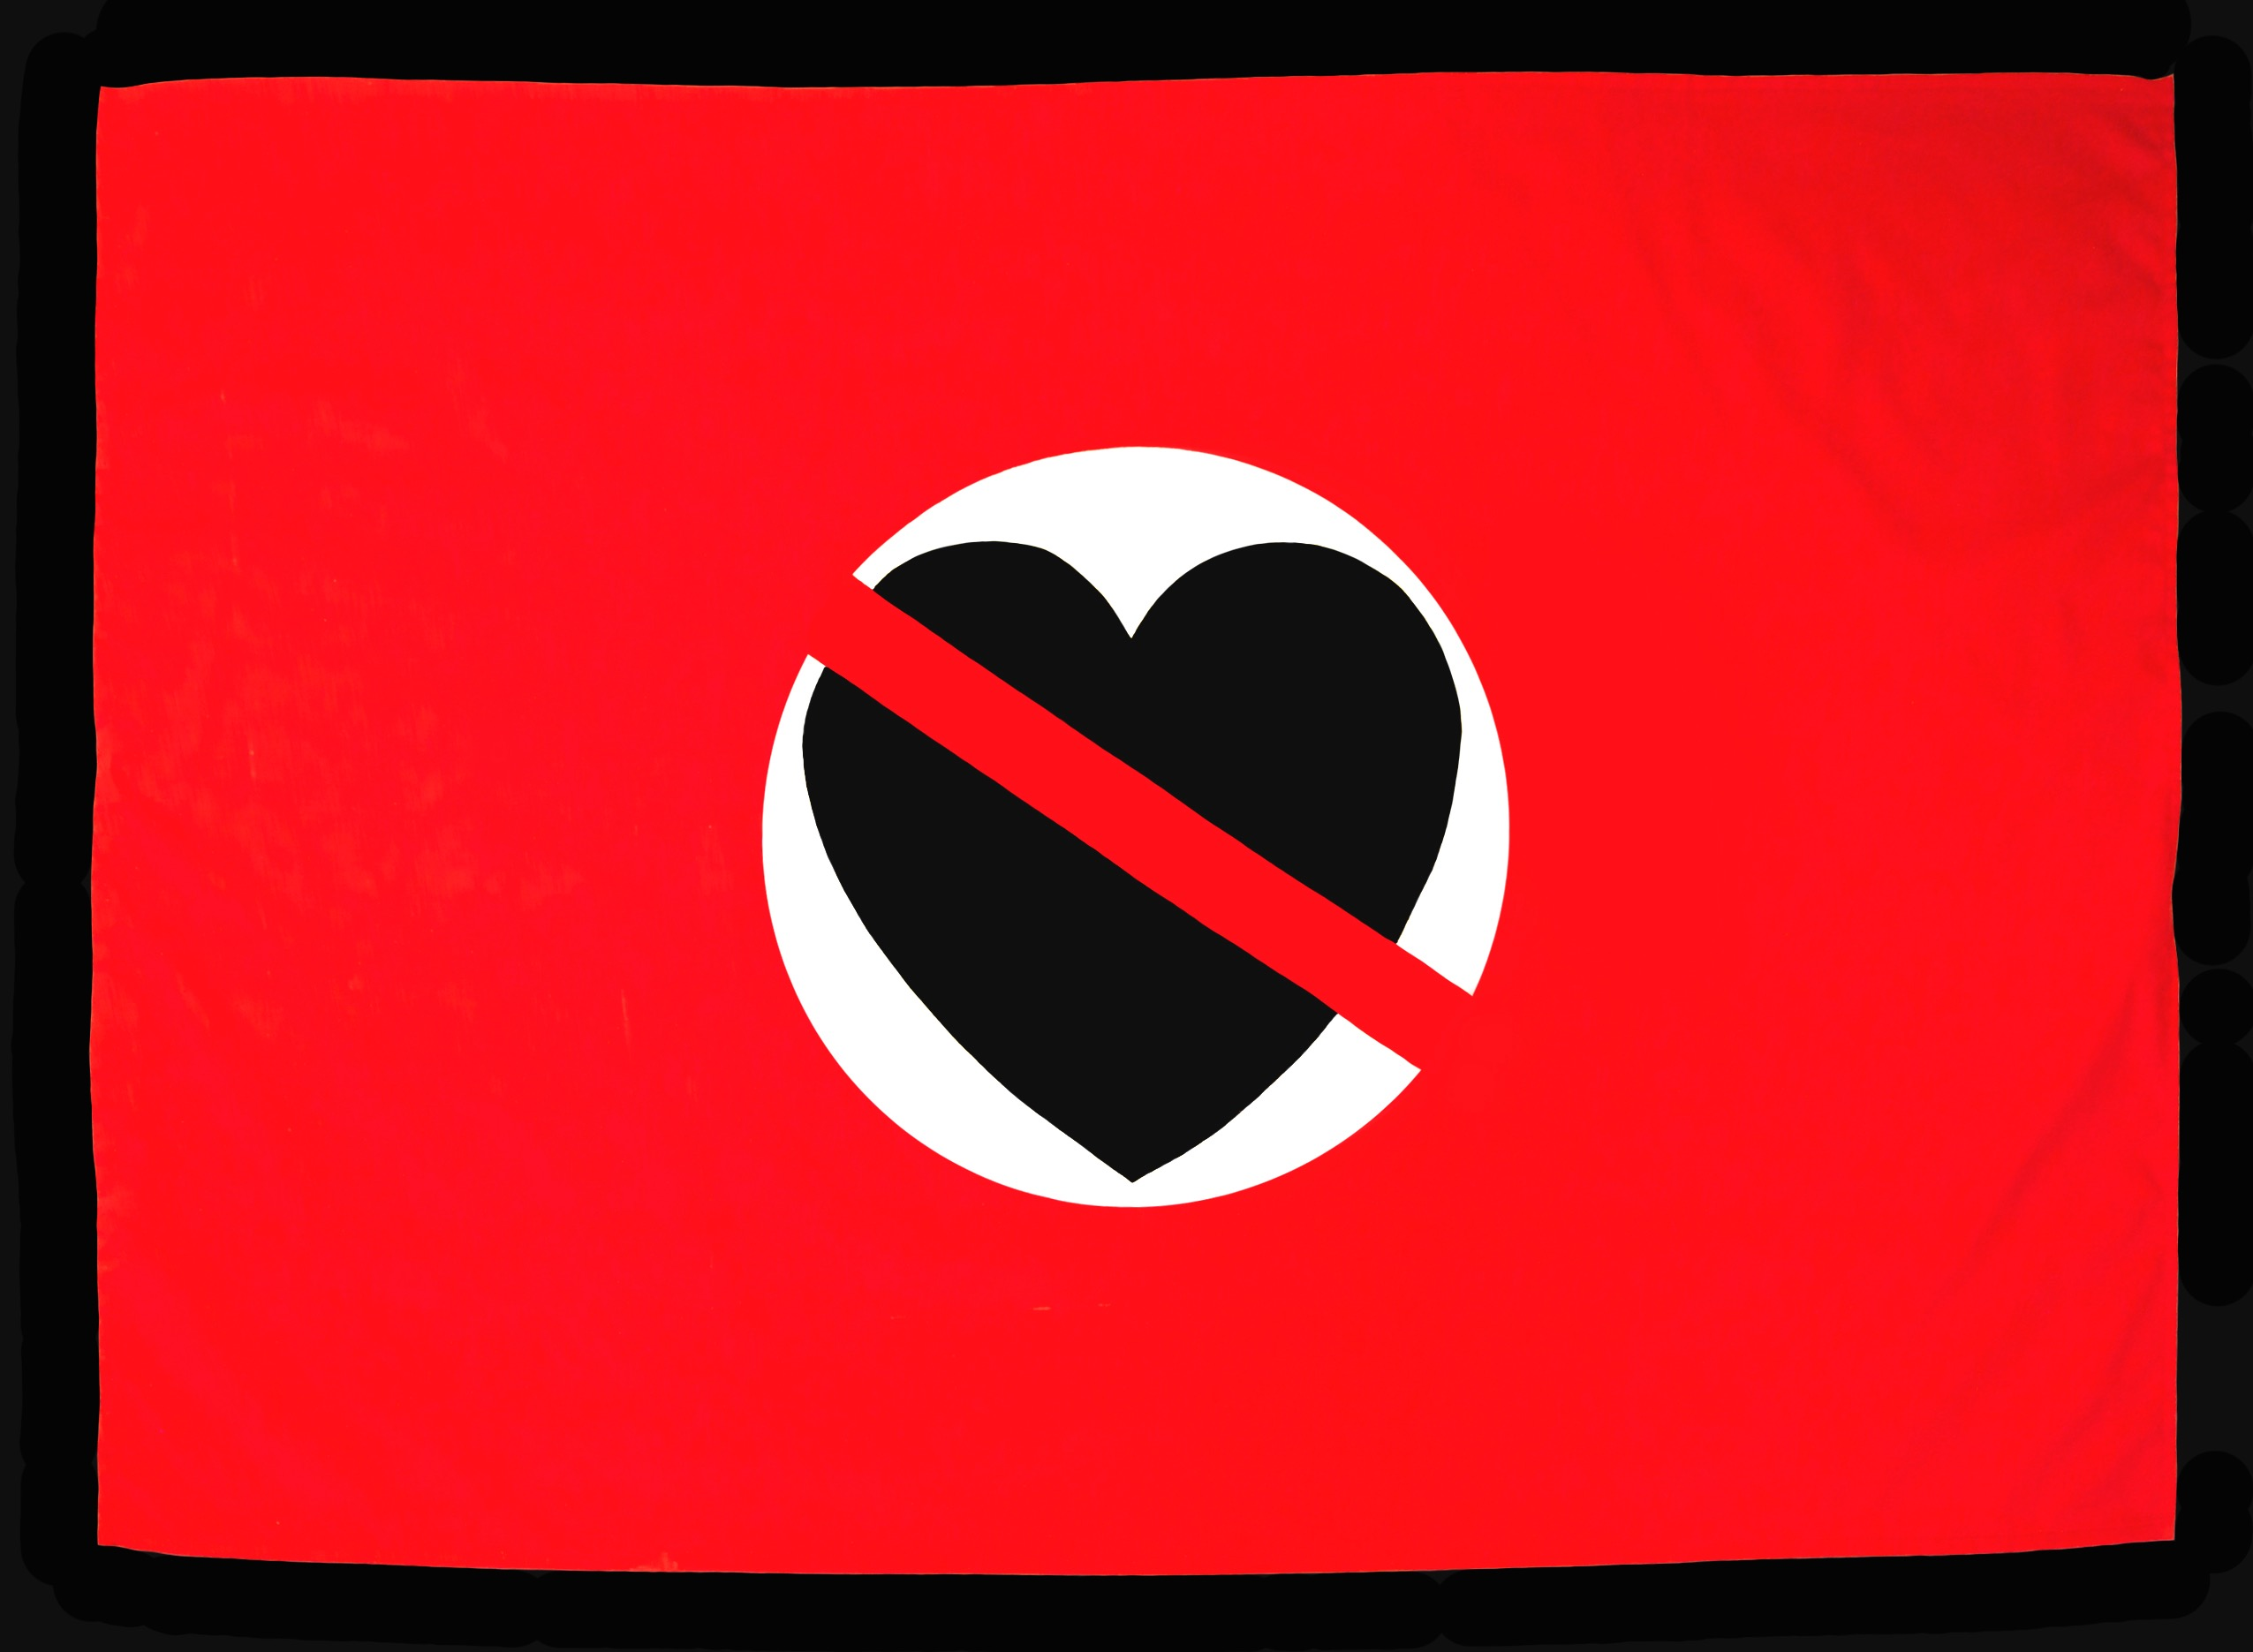 Flag Of The Heartless Nation by JF Whitney 2012